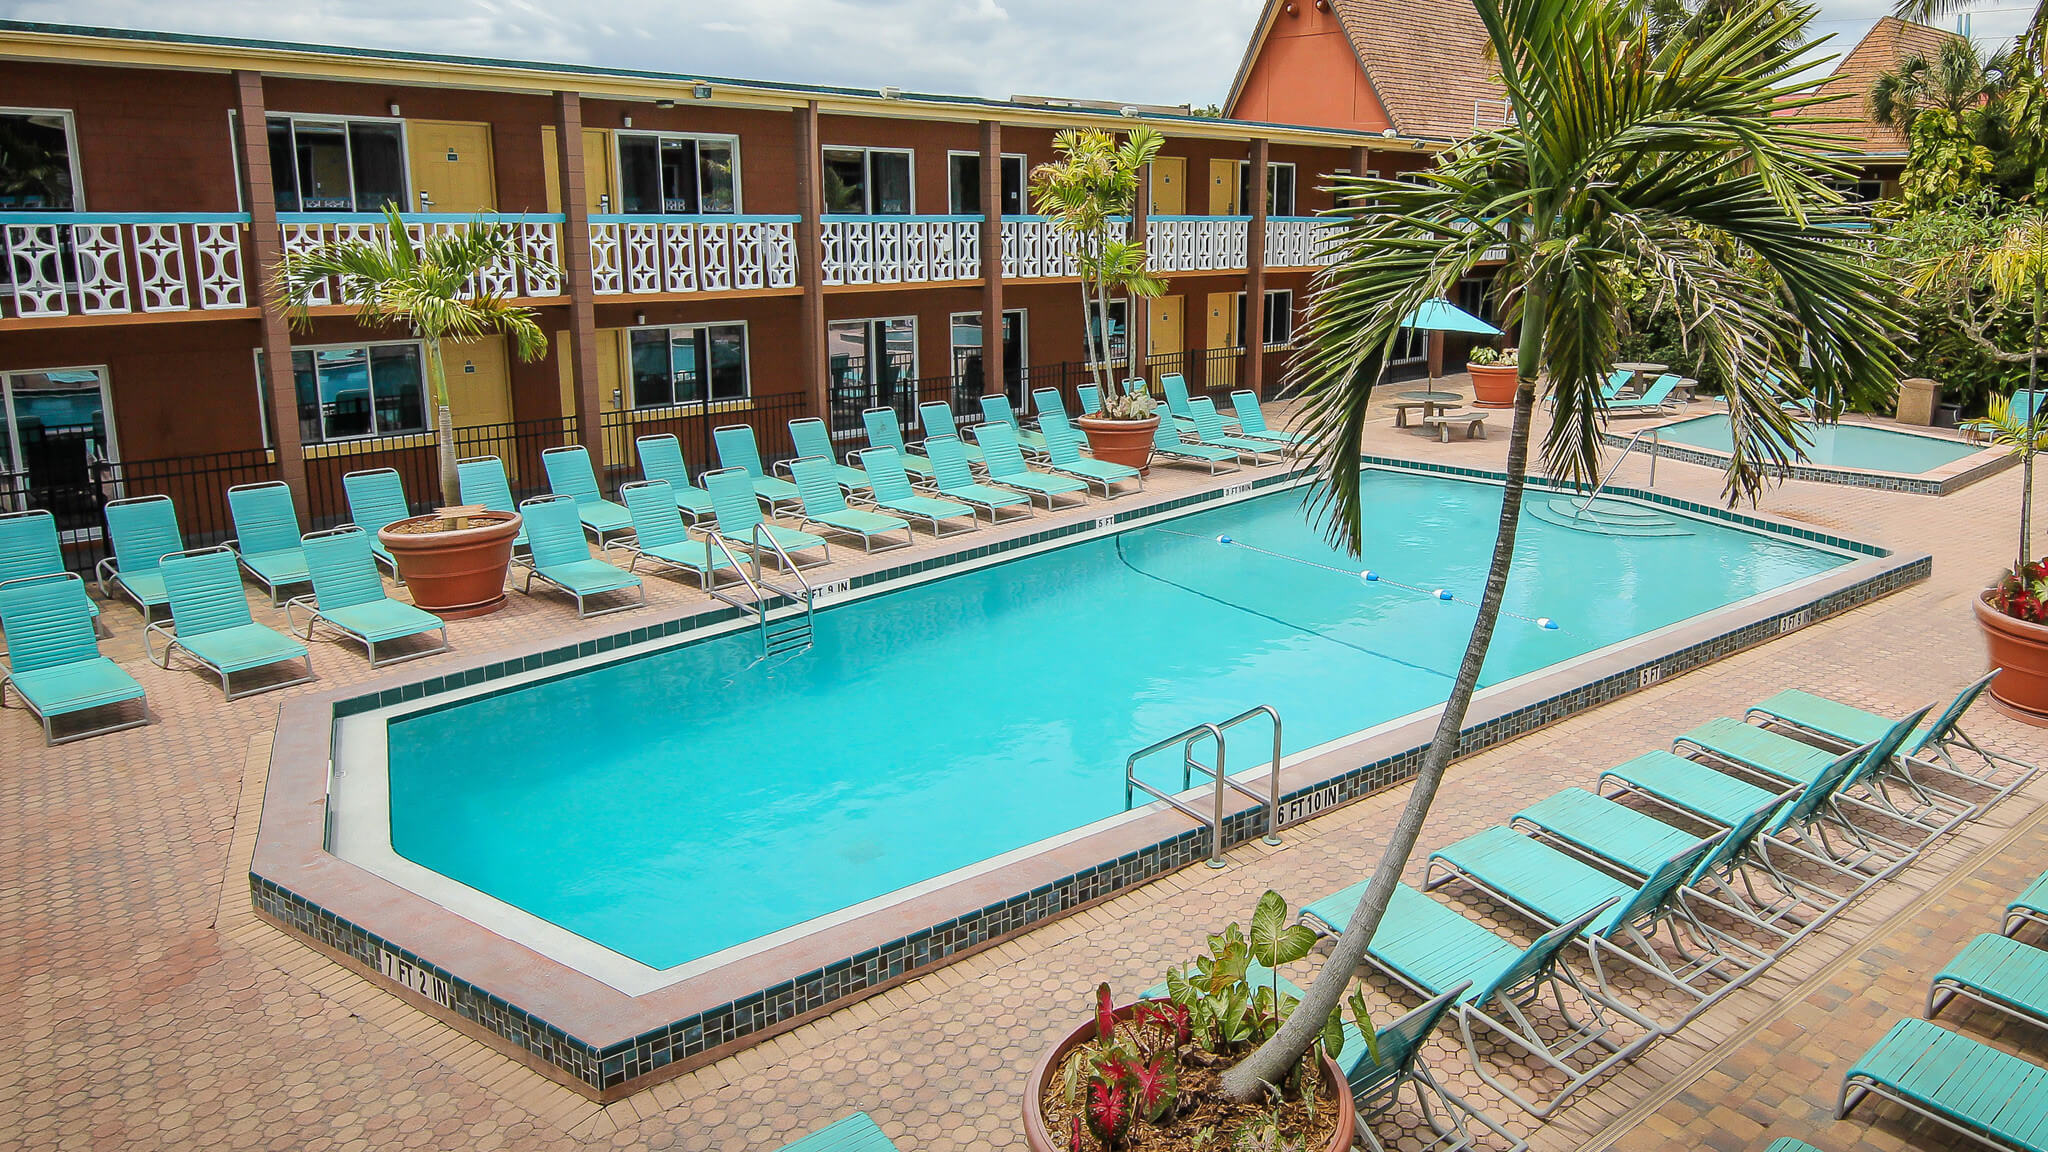 Heated outdoor pool with lounge chairs | Wakulla Suites a Westgate Resort | Westgate Cocoa Beach Resorts